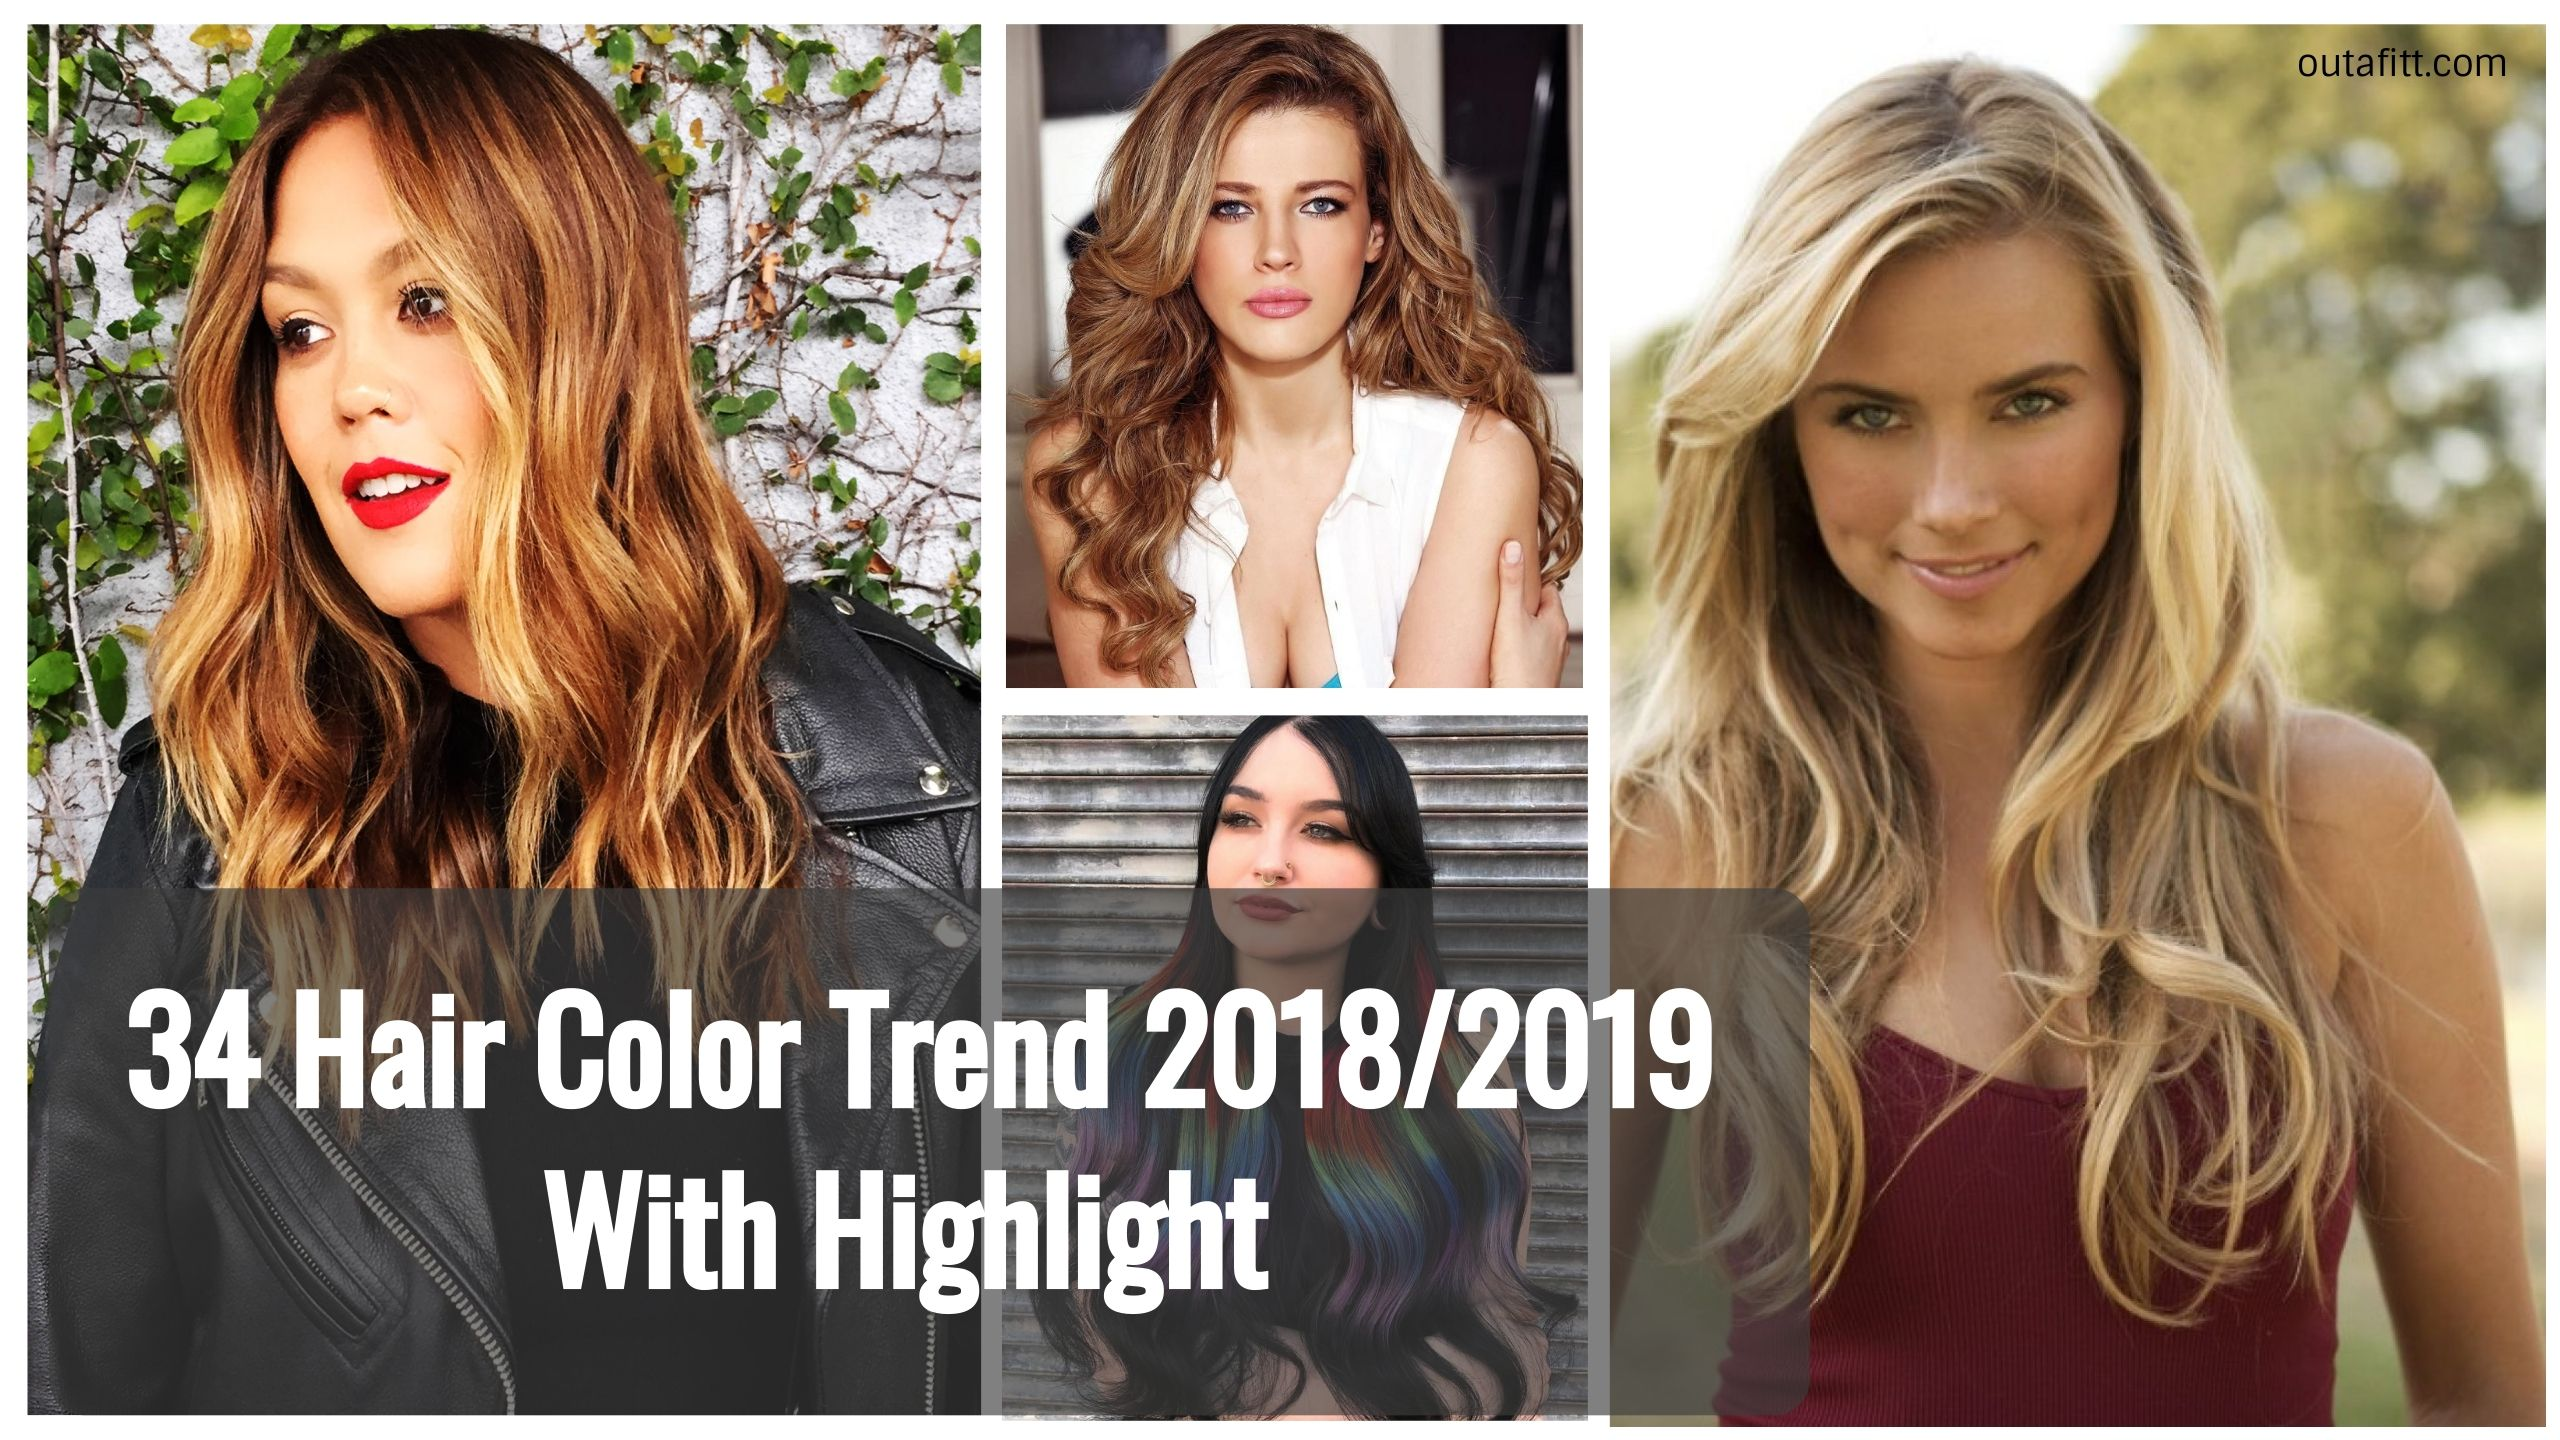 hair color trend with highlight hairstyle pinterest